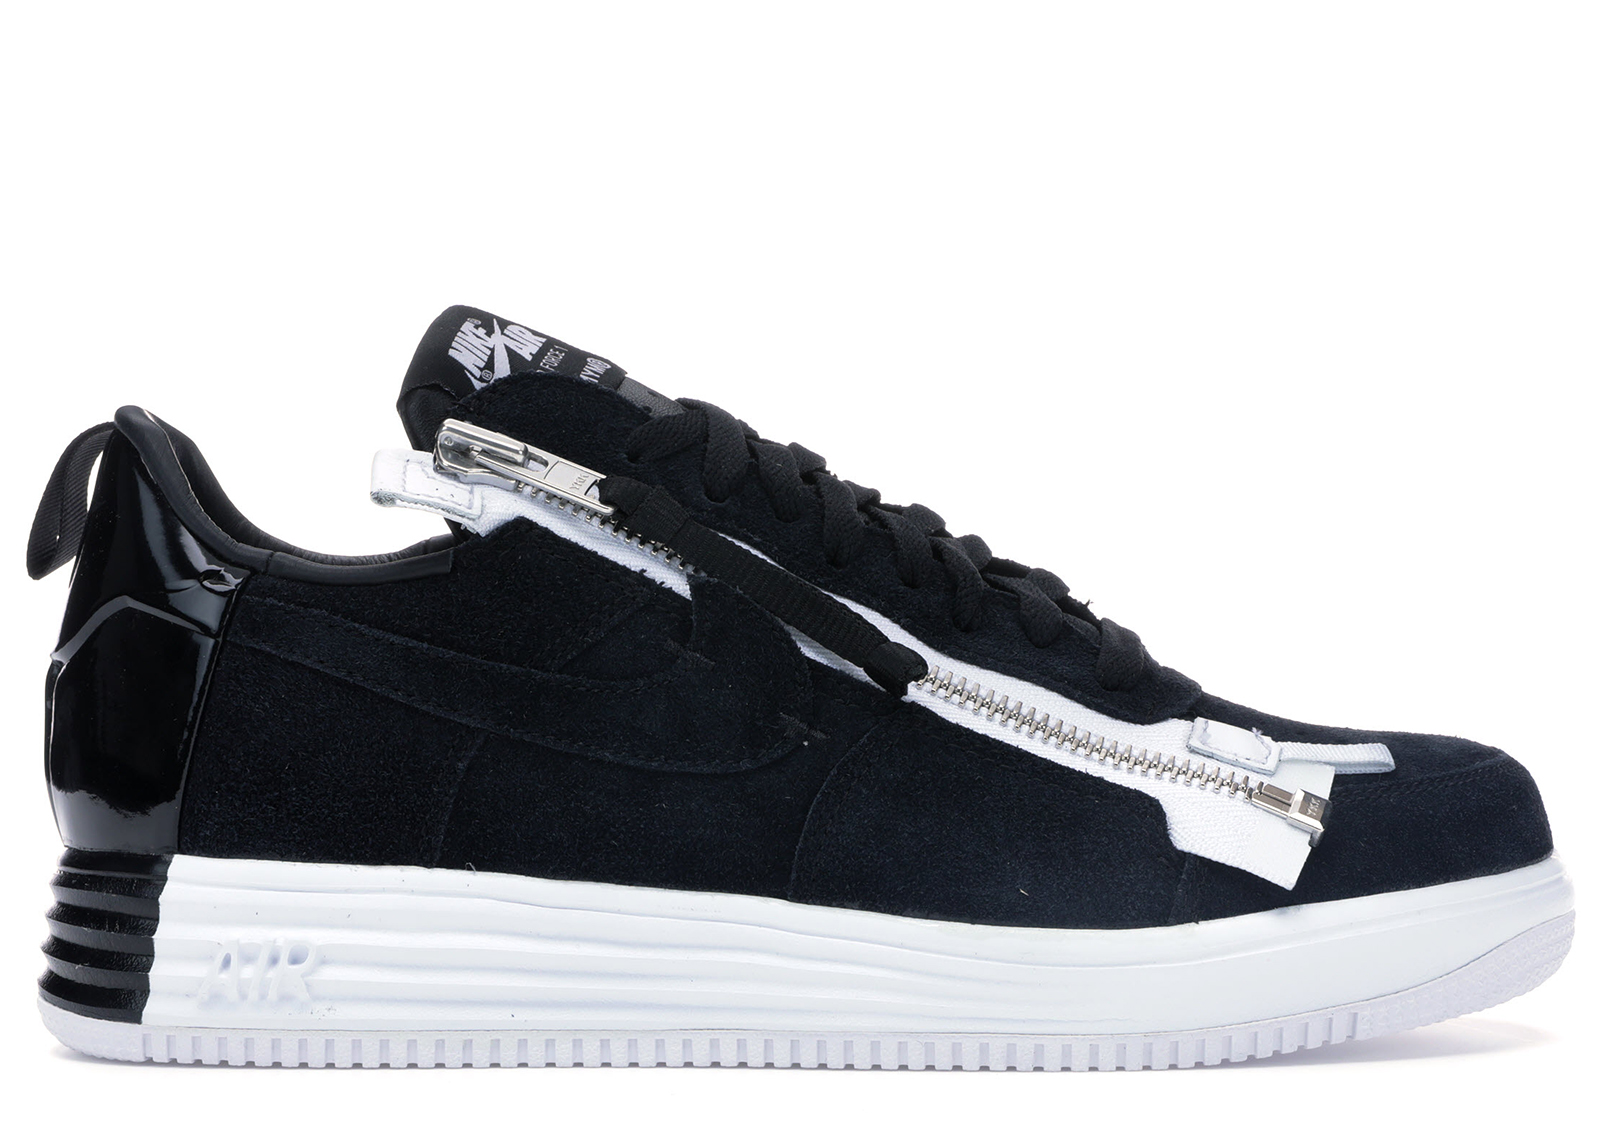 Lunar Force 1 Low Acronym Black White